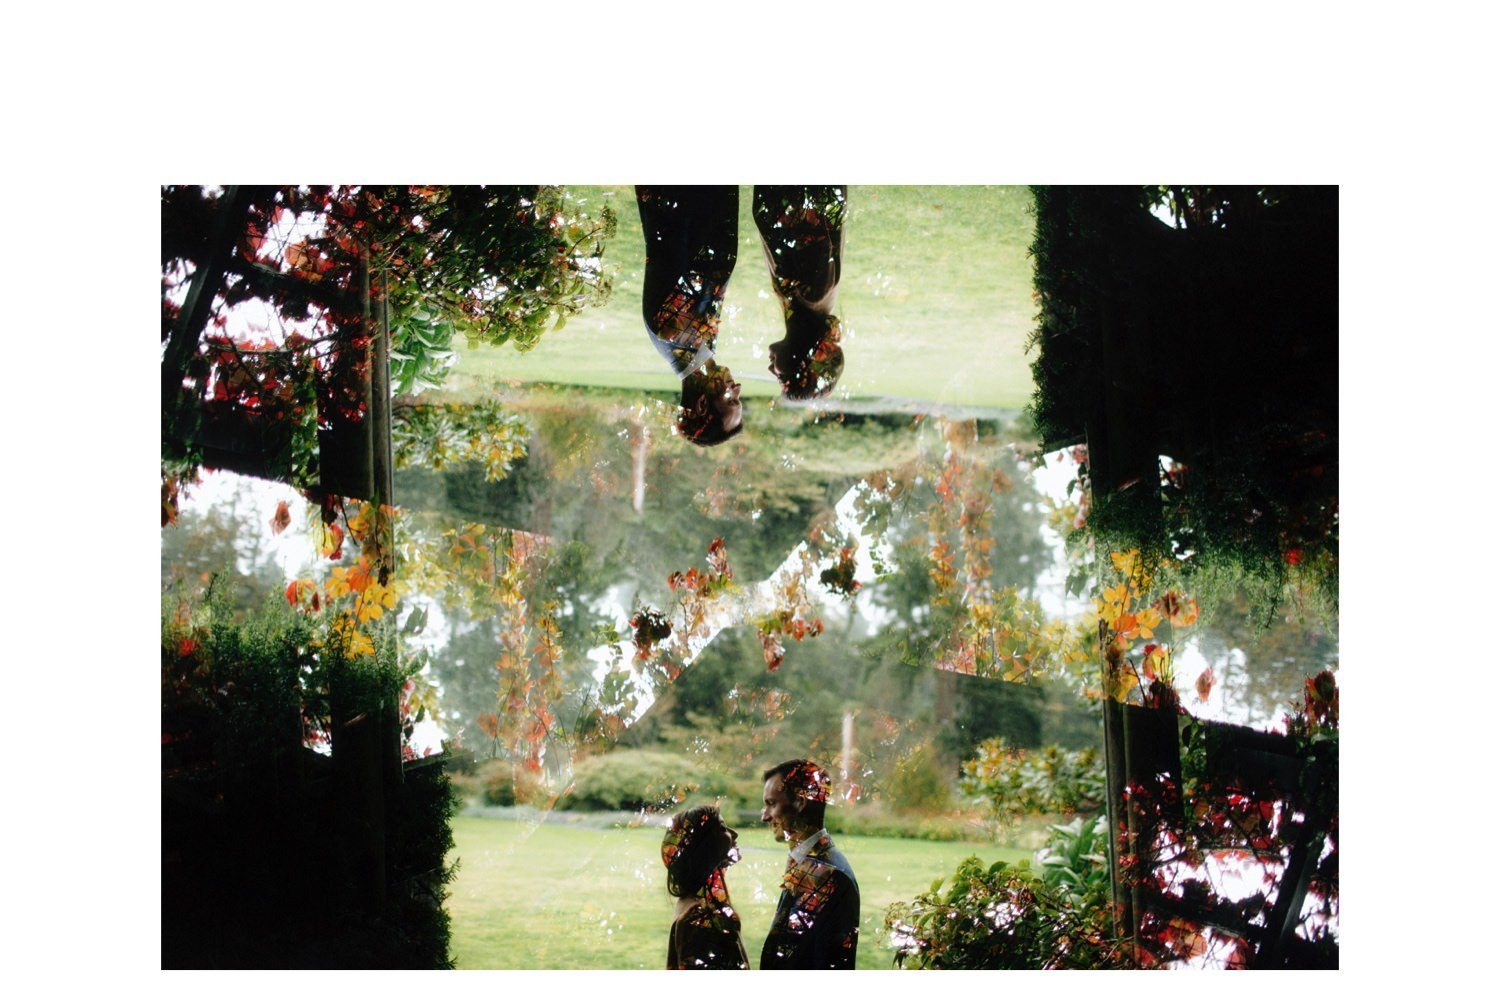 creative double exposure photo of bride and groom at ubc botanical garden